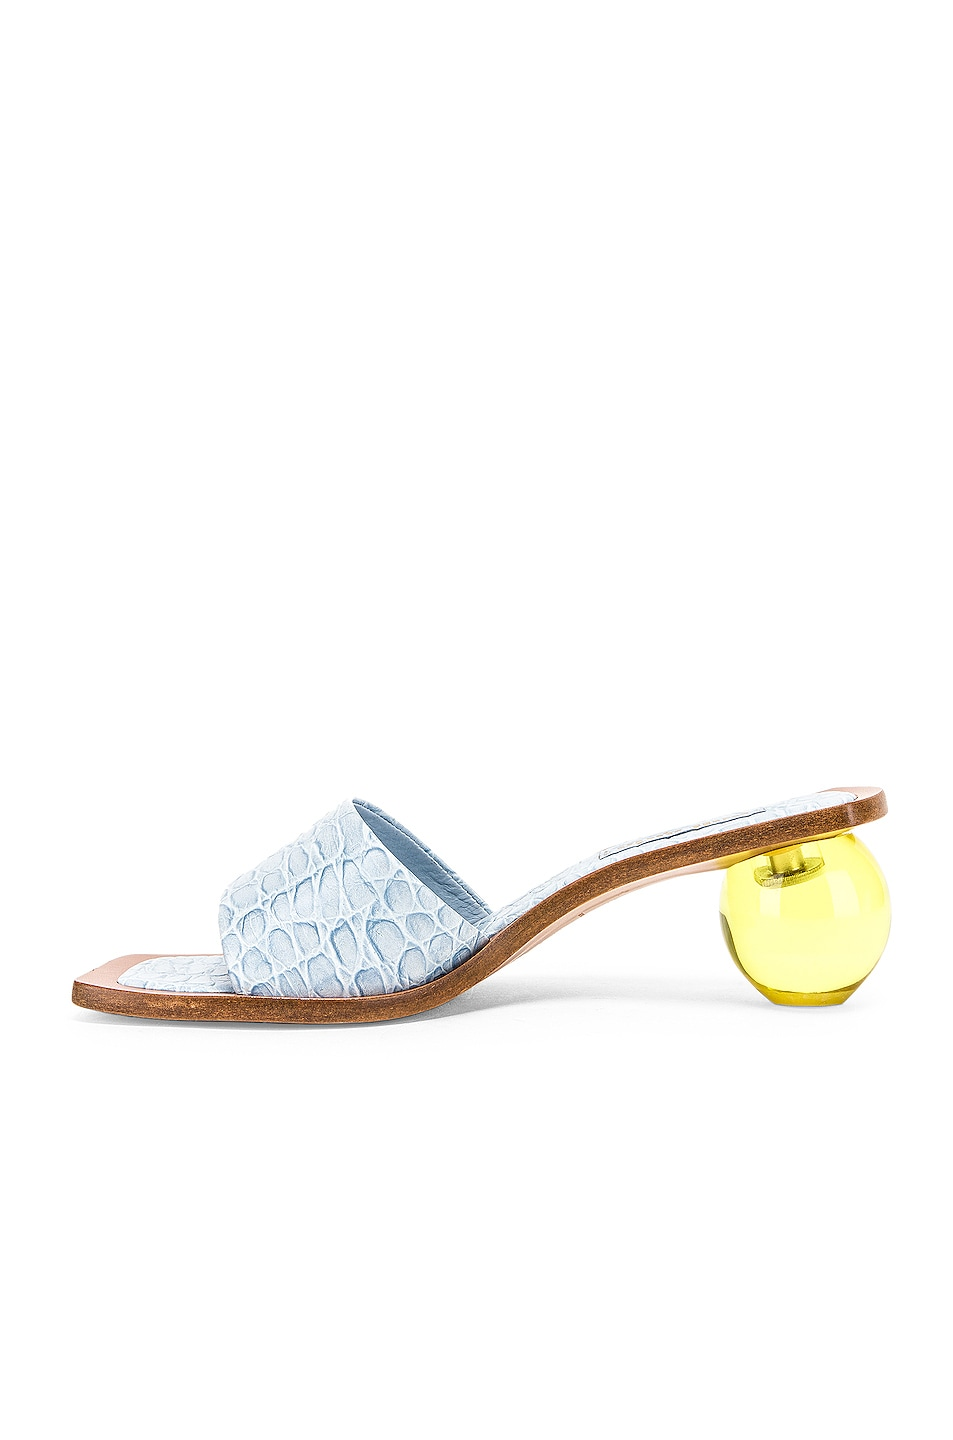 Image 5 of Cult Gaia Tao Sandal in Bluebell